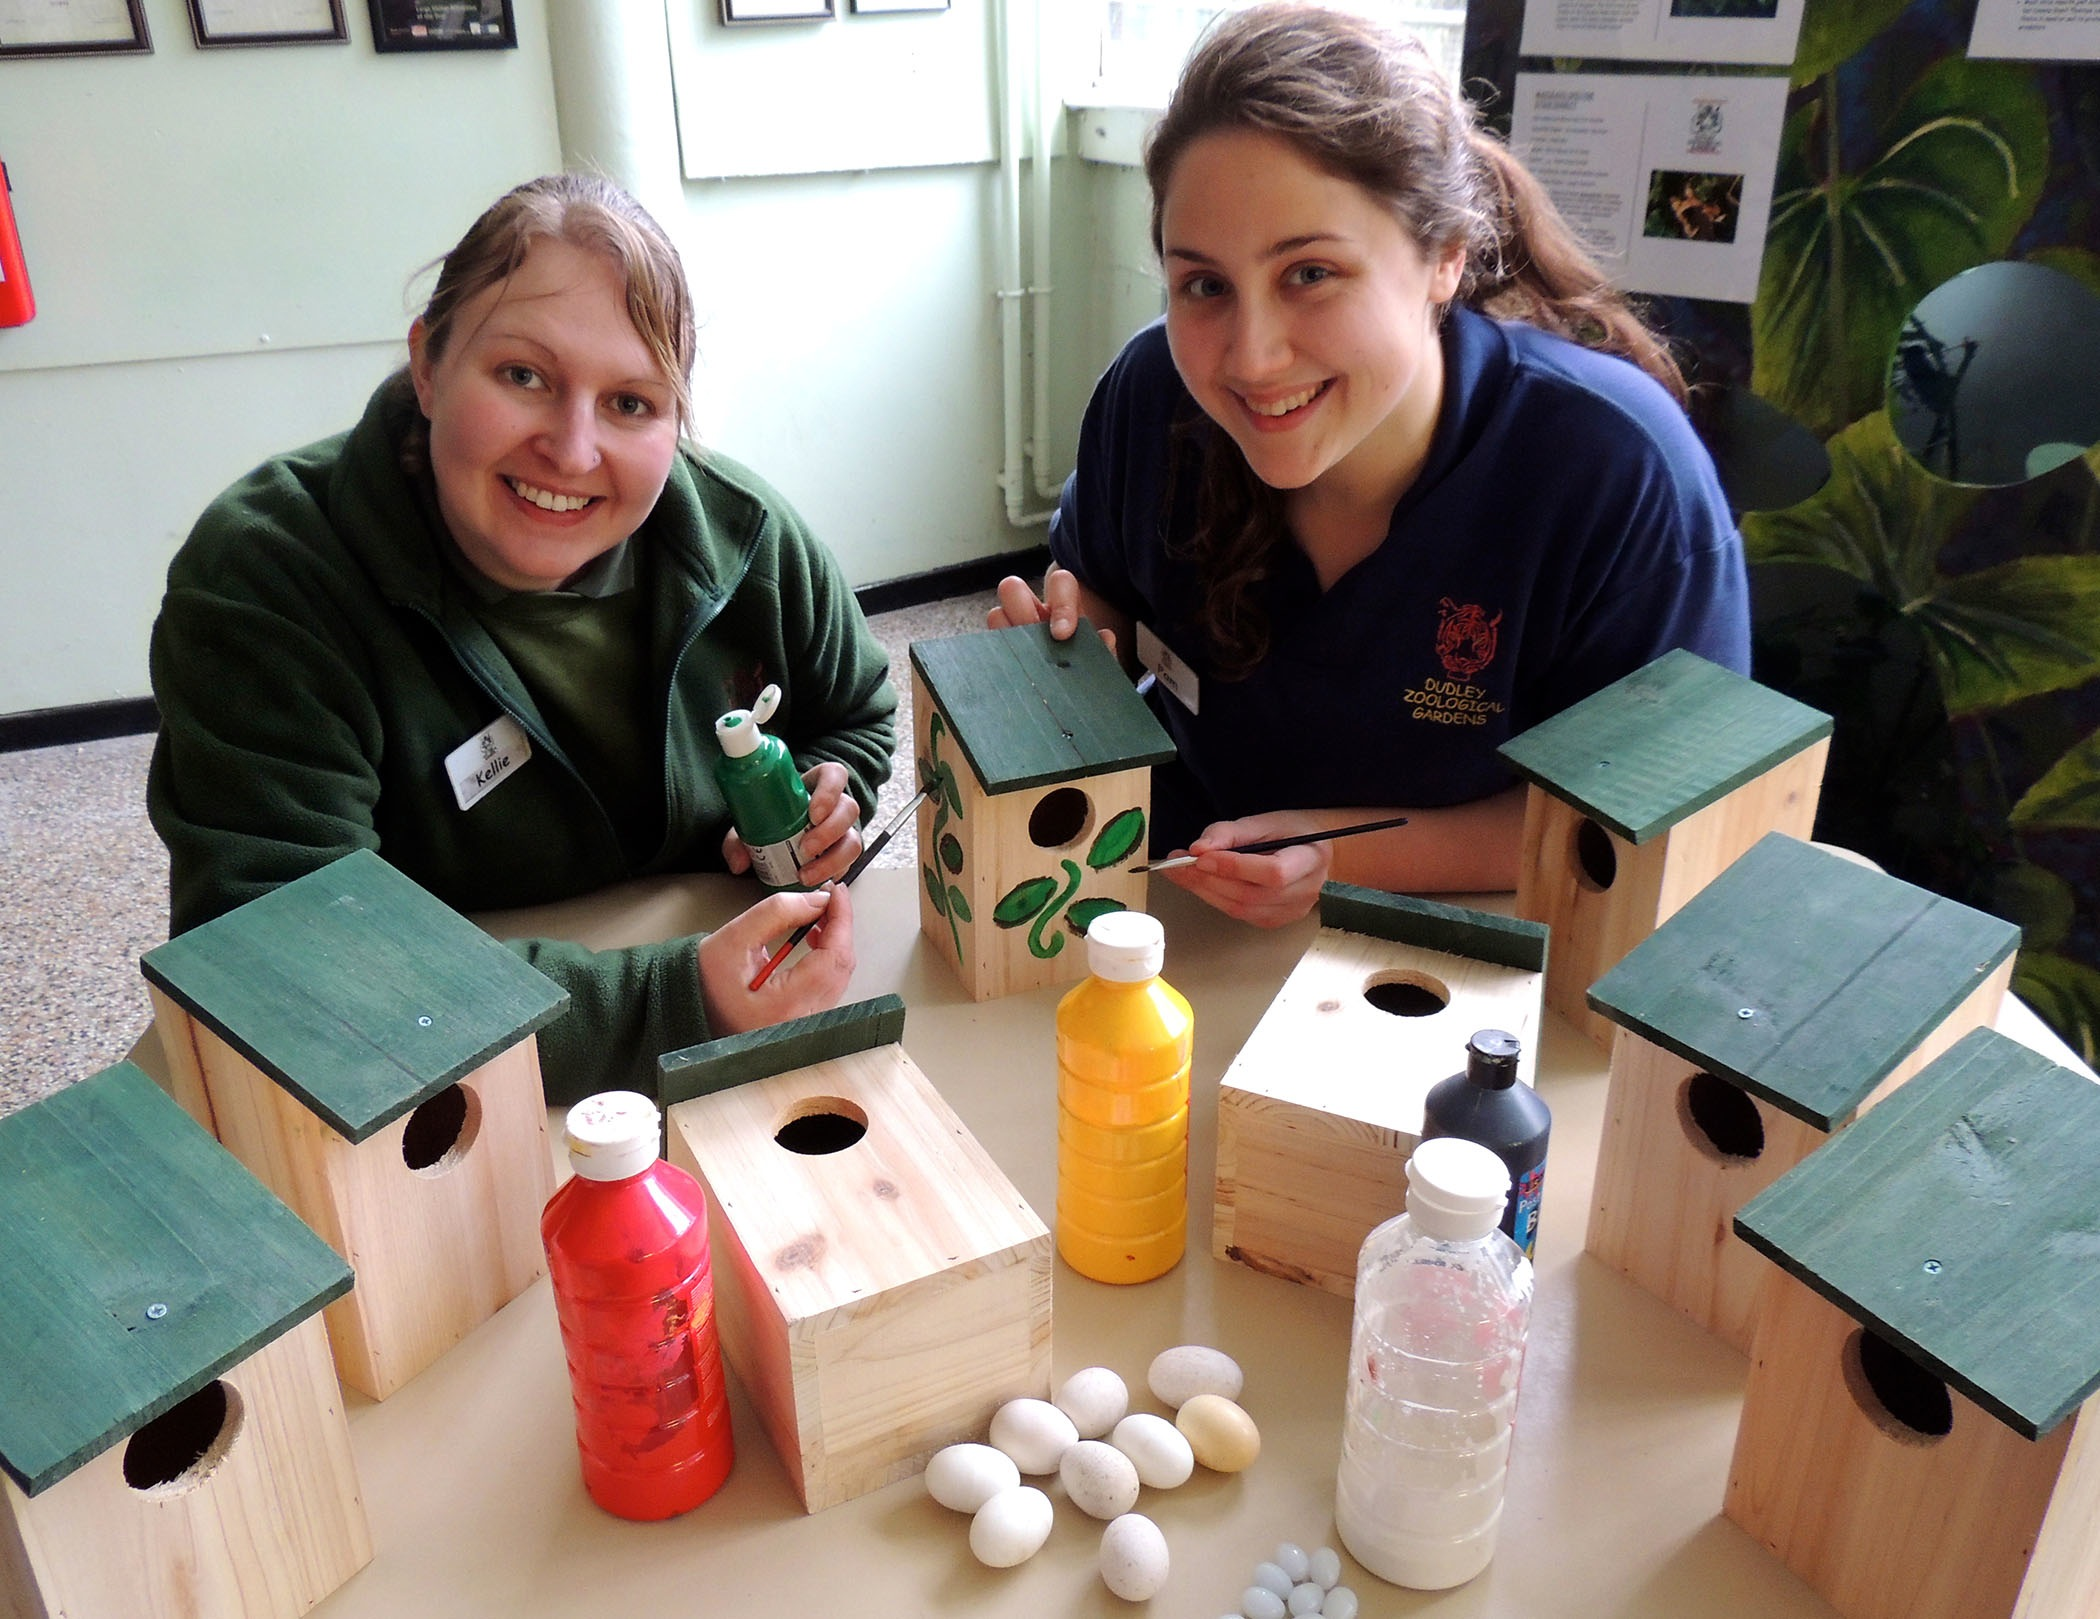 DZG birds section leader, Kellie Piper, and presenter, Pam Midwood, get to work decorating